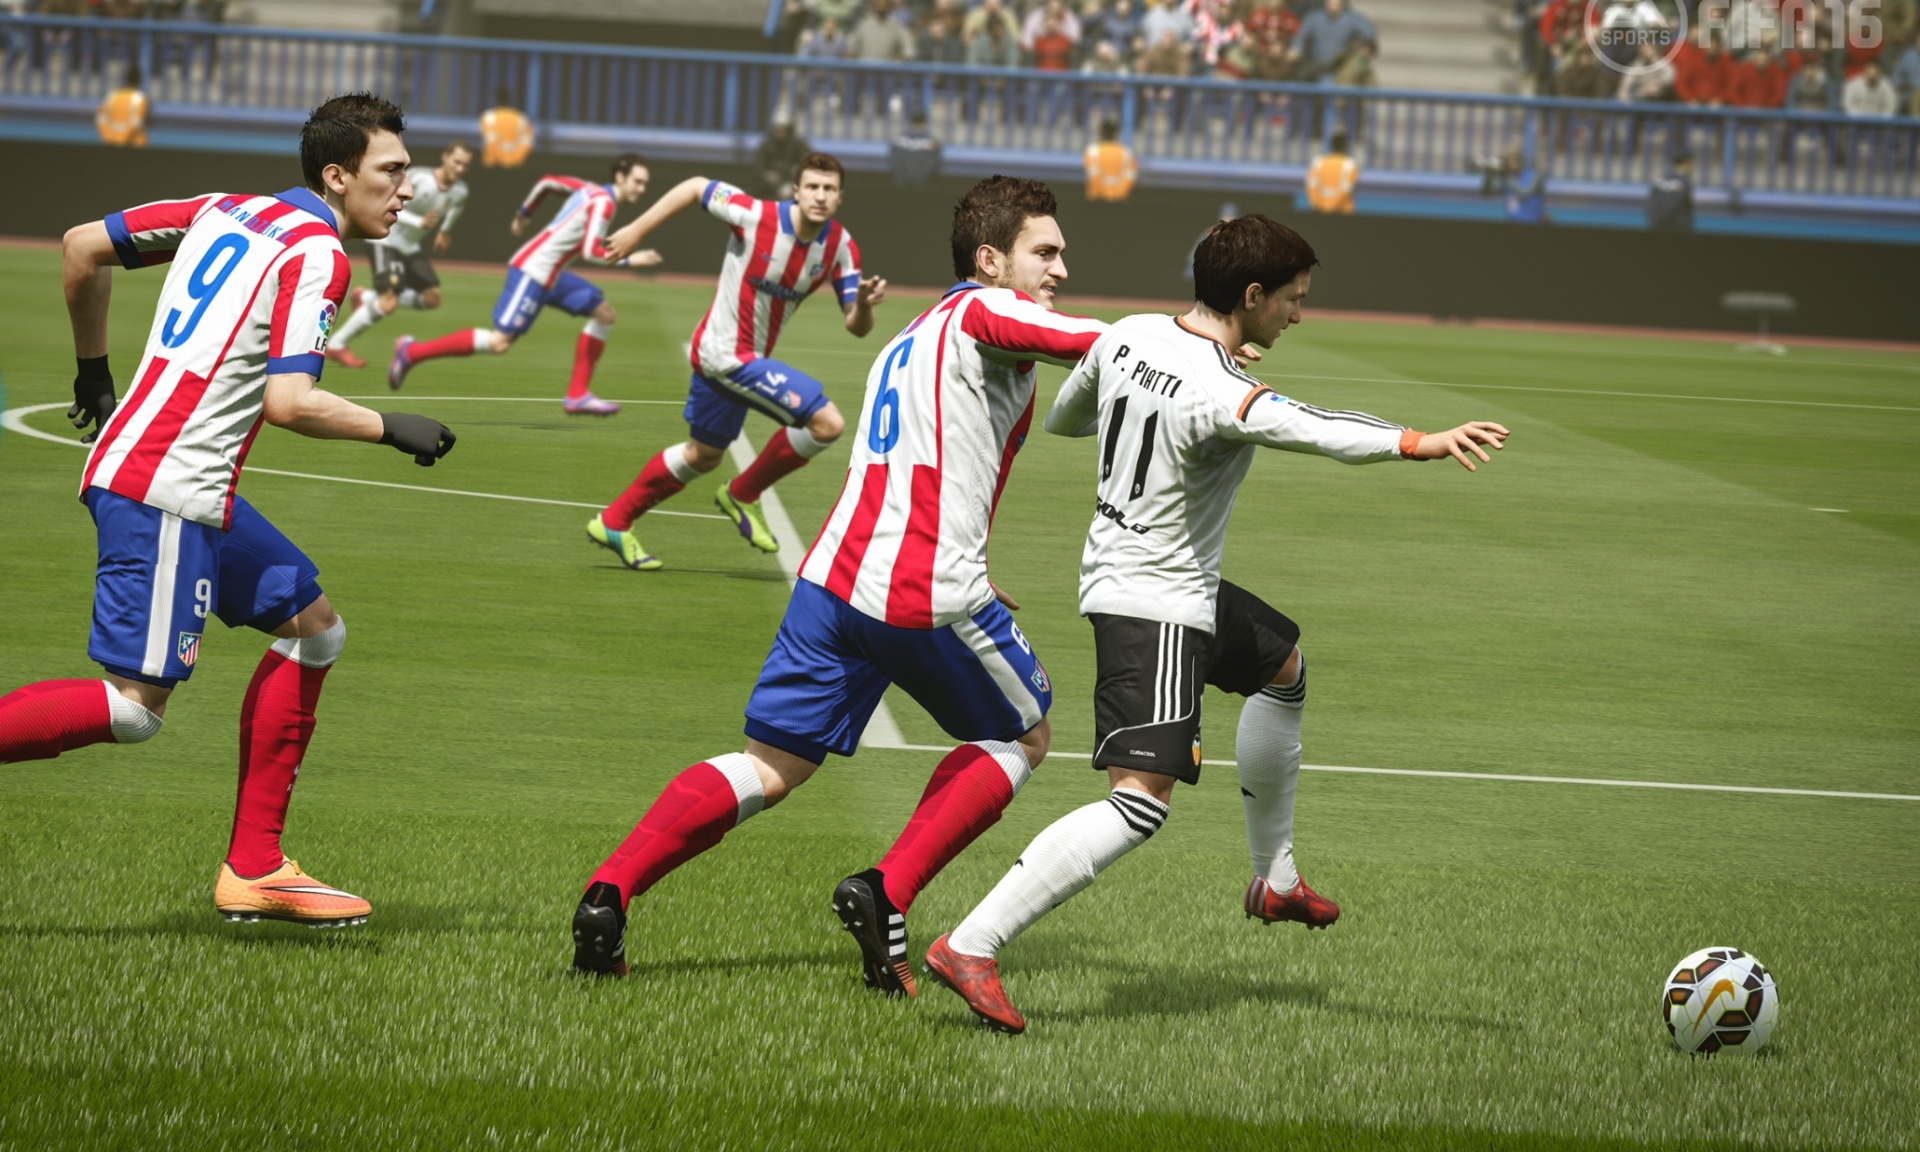 ufifa16coins:The Eight Key New Features For FIFA 16